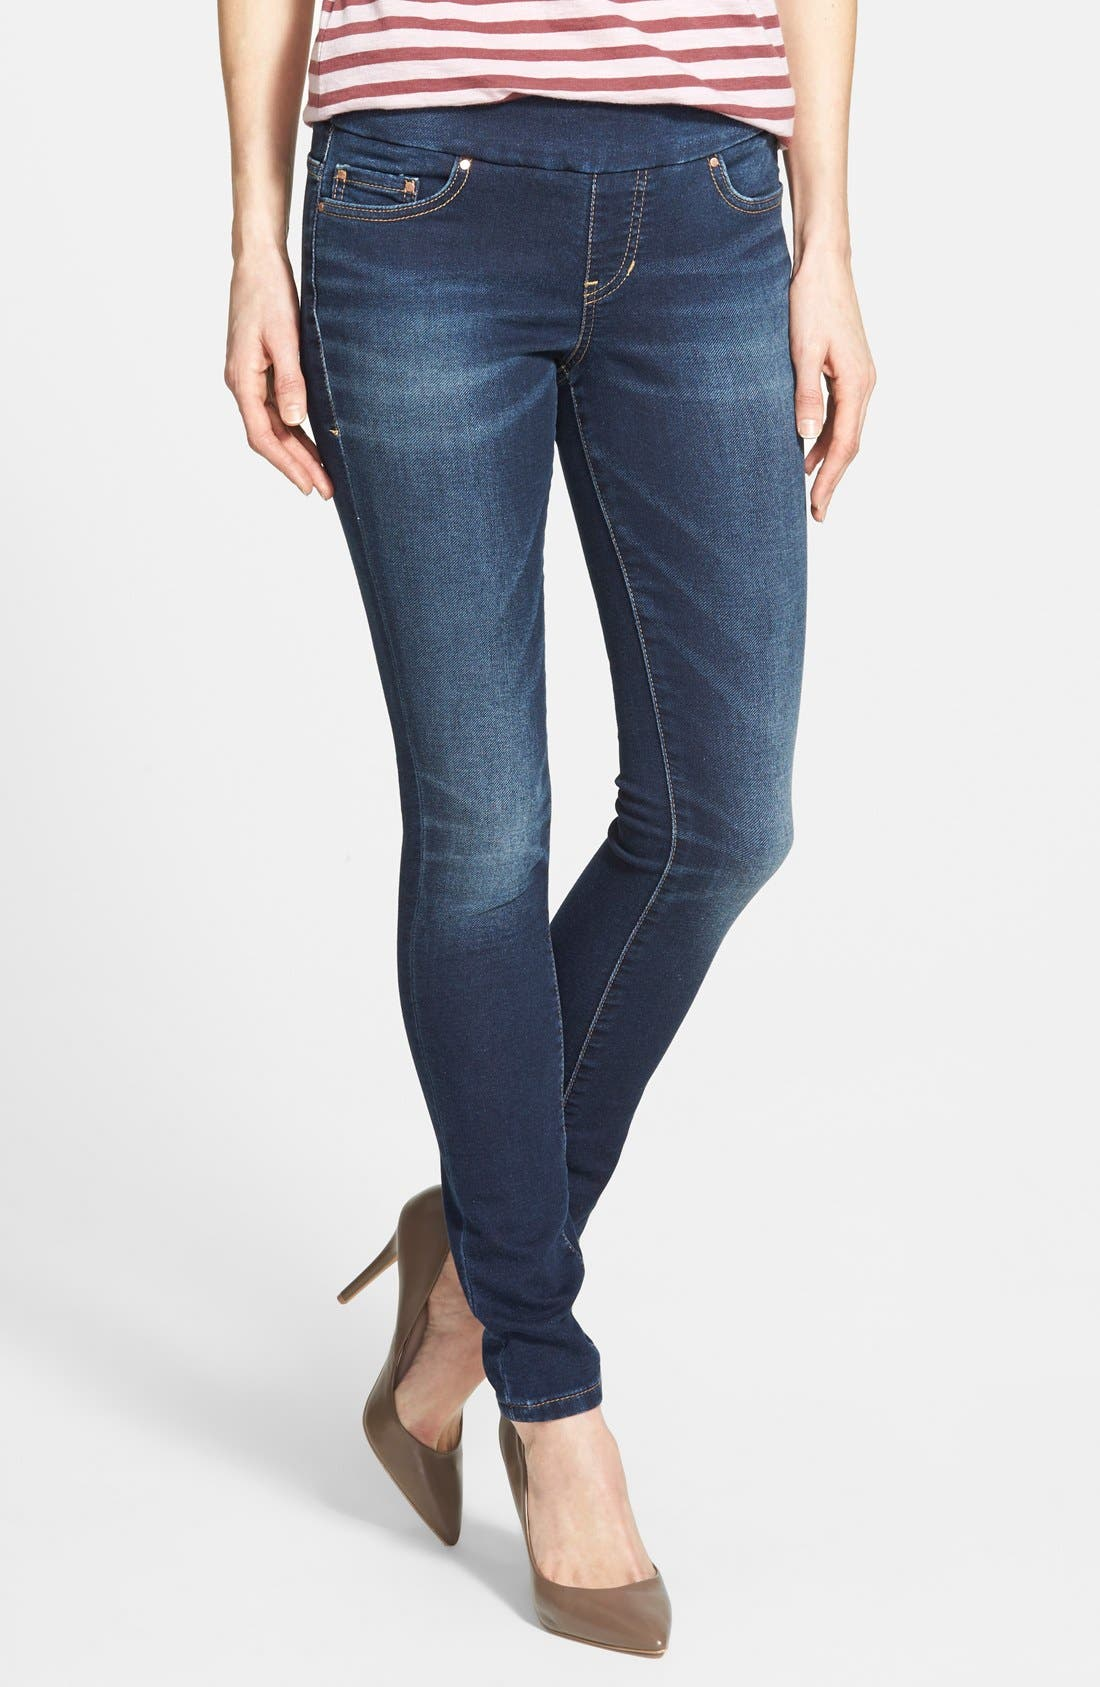 JAG JEANS 'Nora' Pull-On Stretch Knit Skinny Jeans